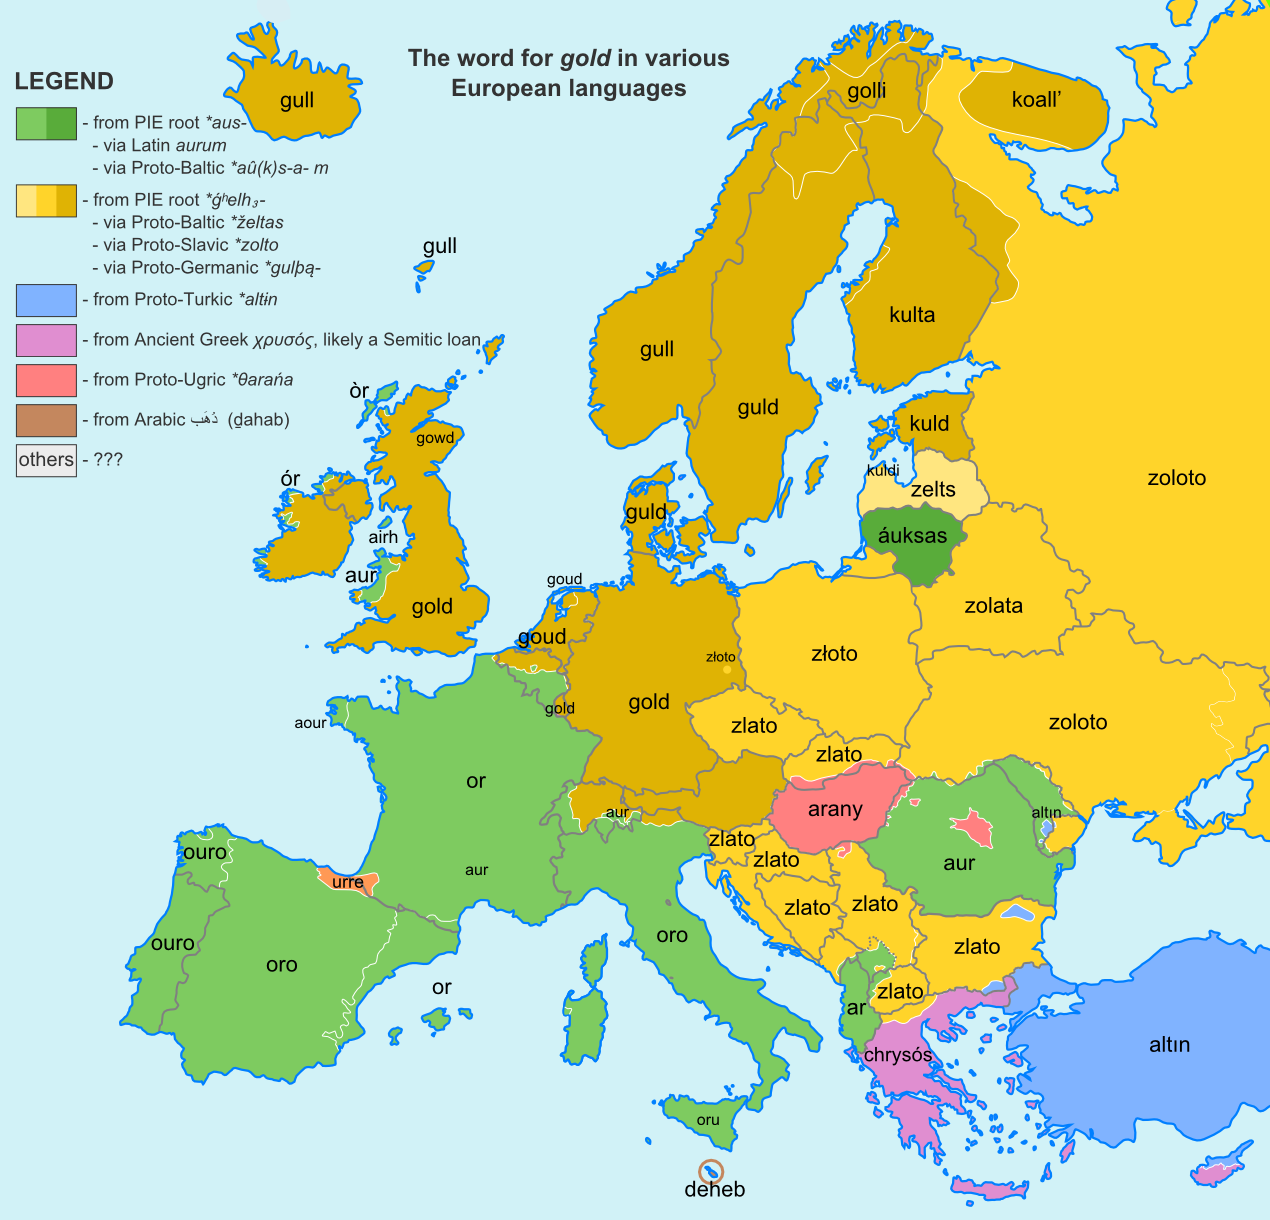 The word for gold in various European languages